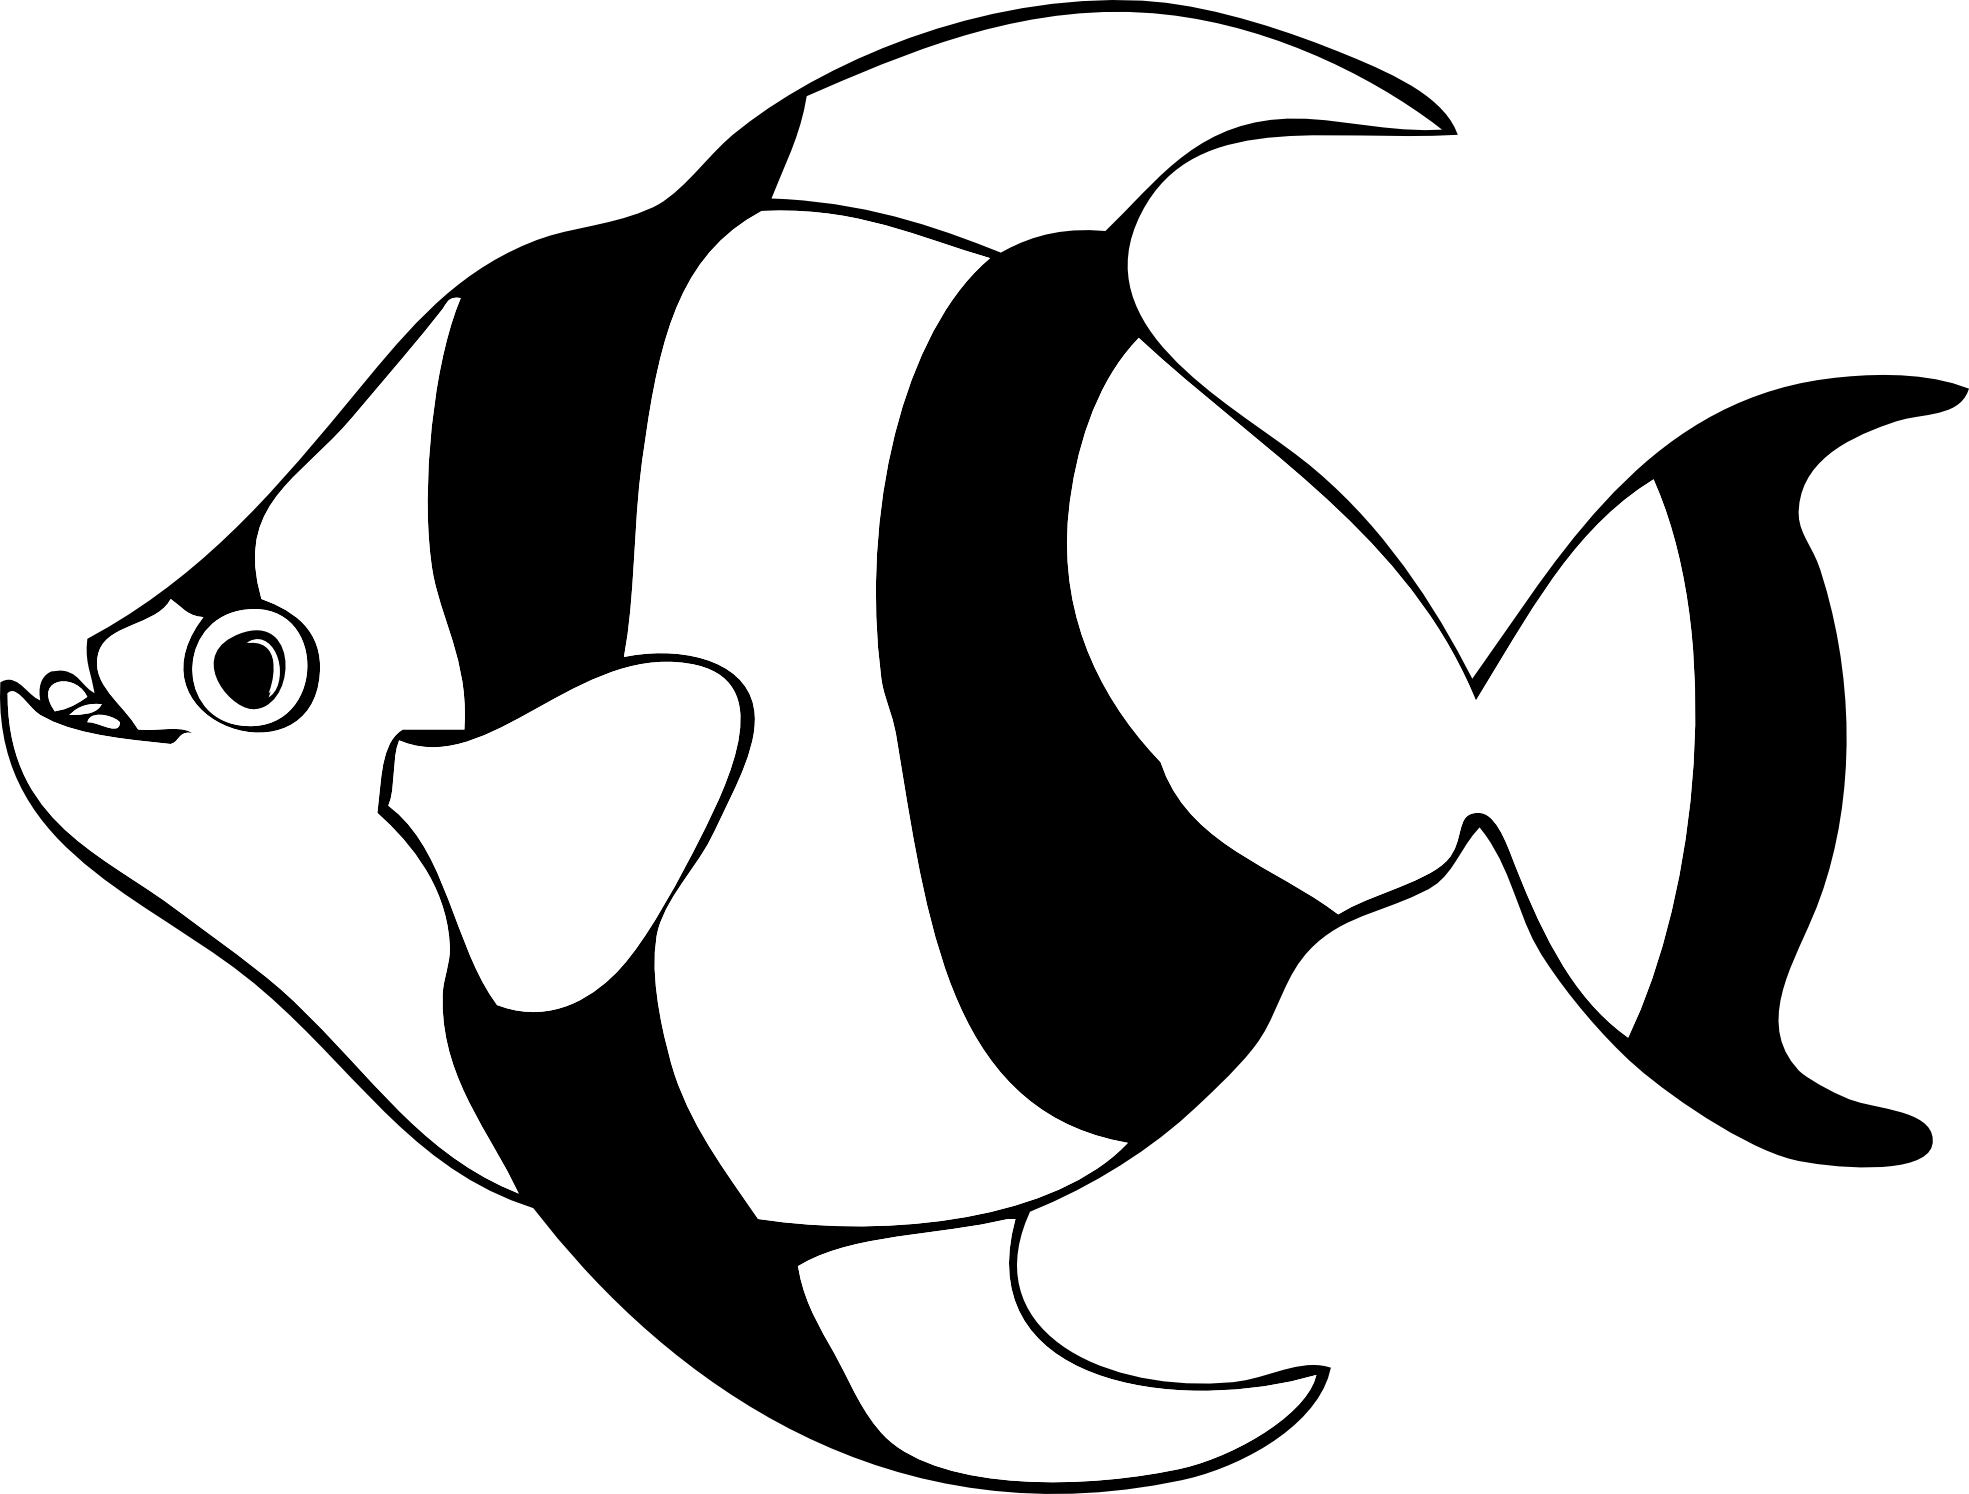 1969x1494 Best Fish Clipart Black And White